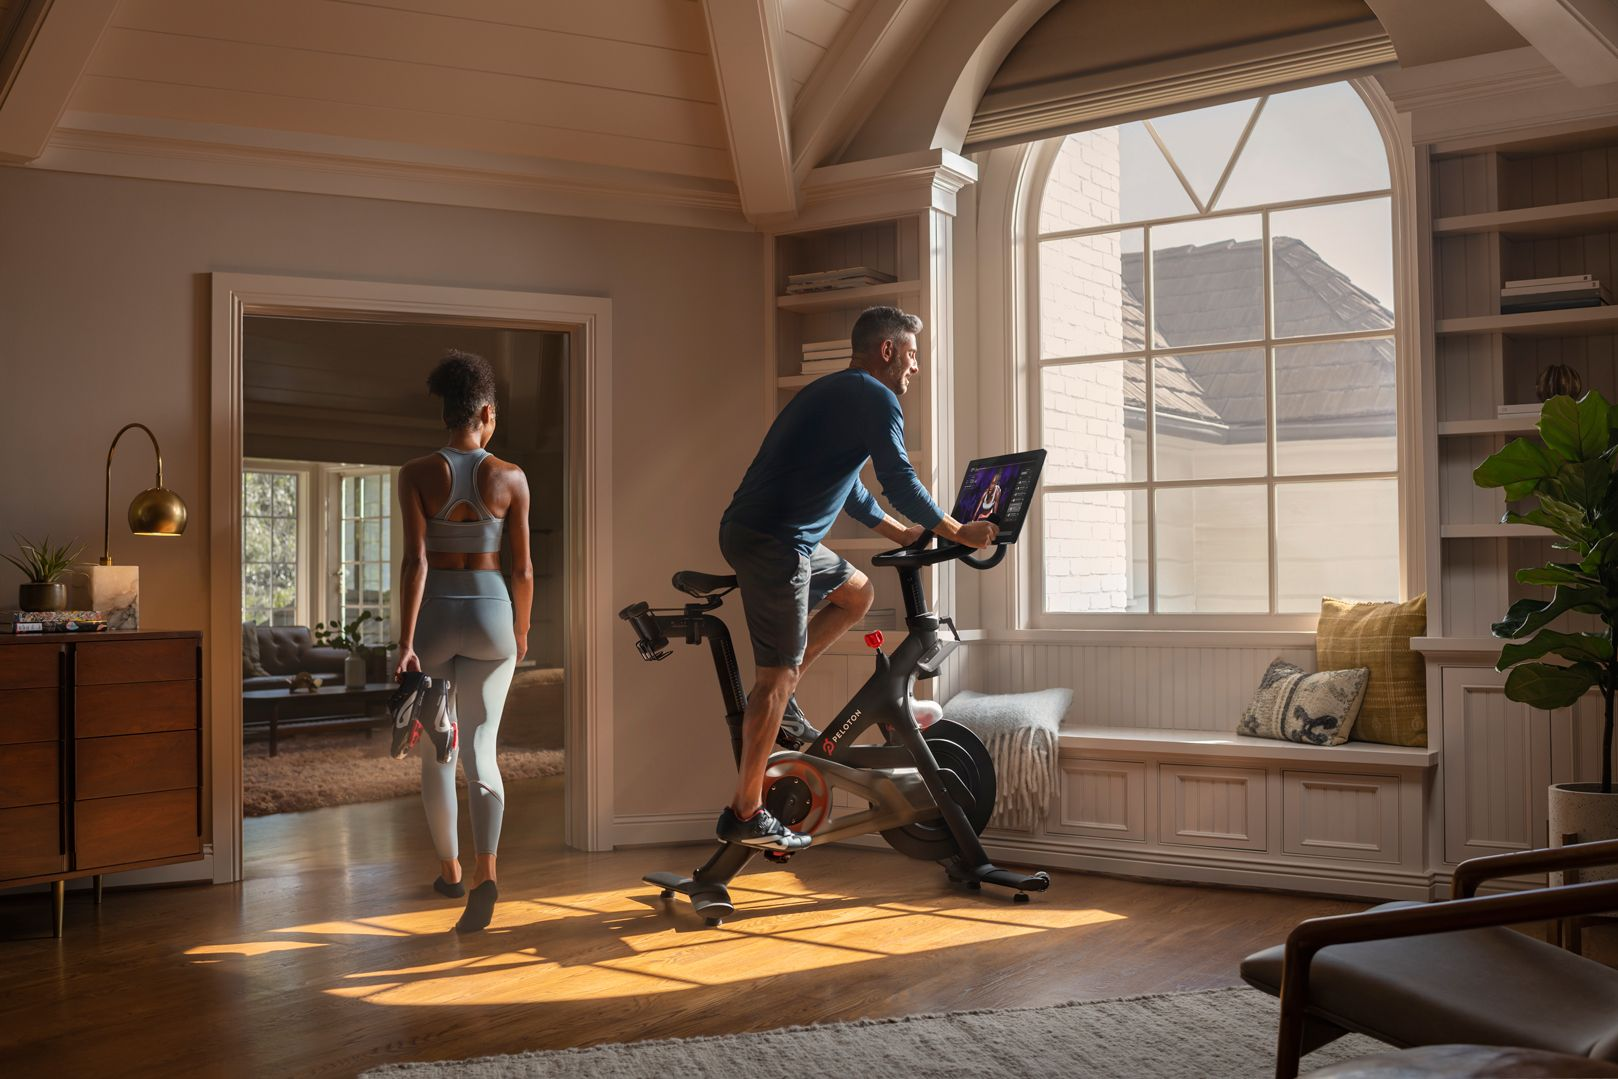 The Best Luxury Home Gym Equipment You Need To Keep Fit During The Circuit Breaker